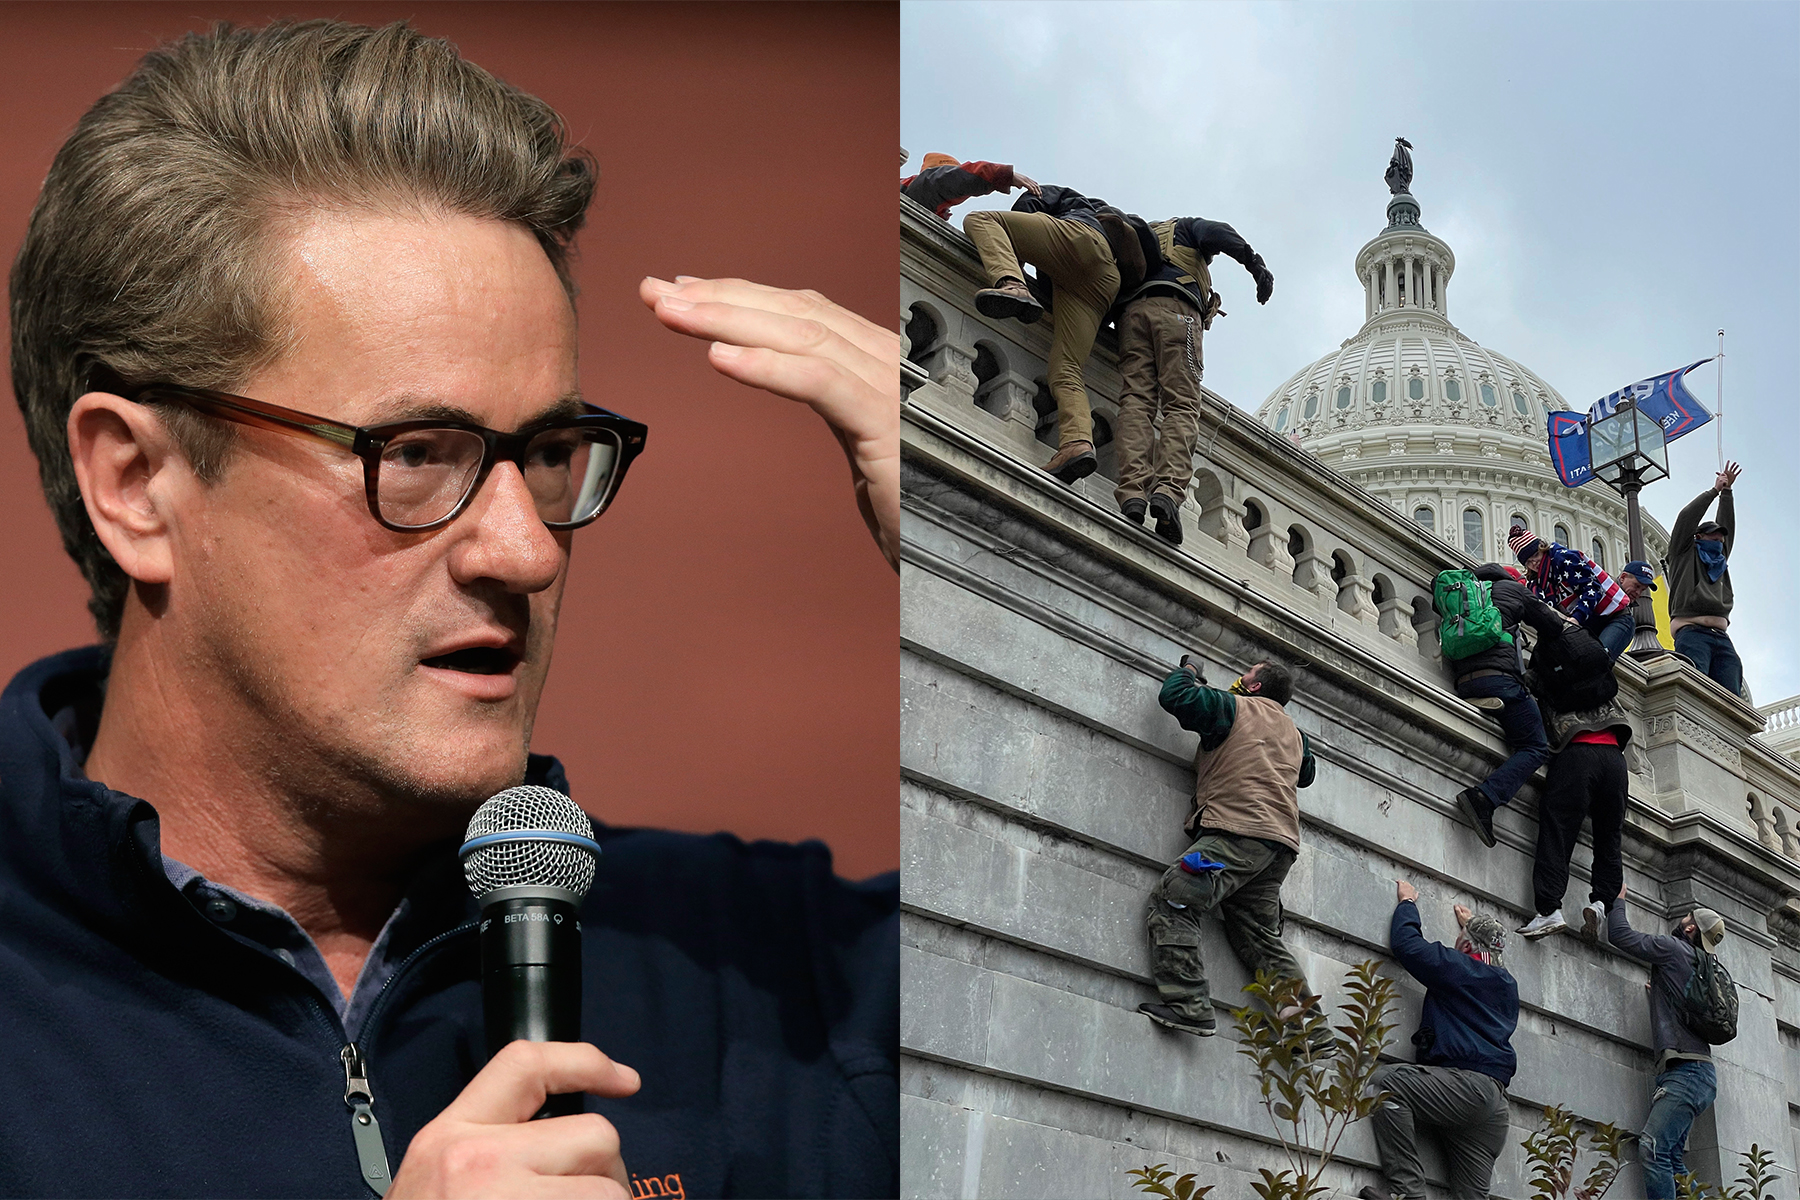 Joe Scarborough Drops F-Bomb on MSNBC, Calls for Arrest of Donald Trump After Capitol Raid